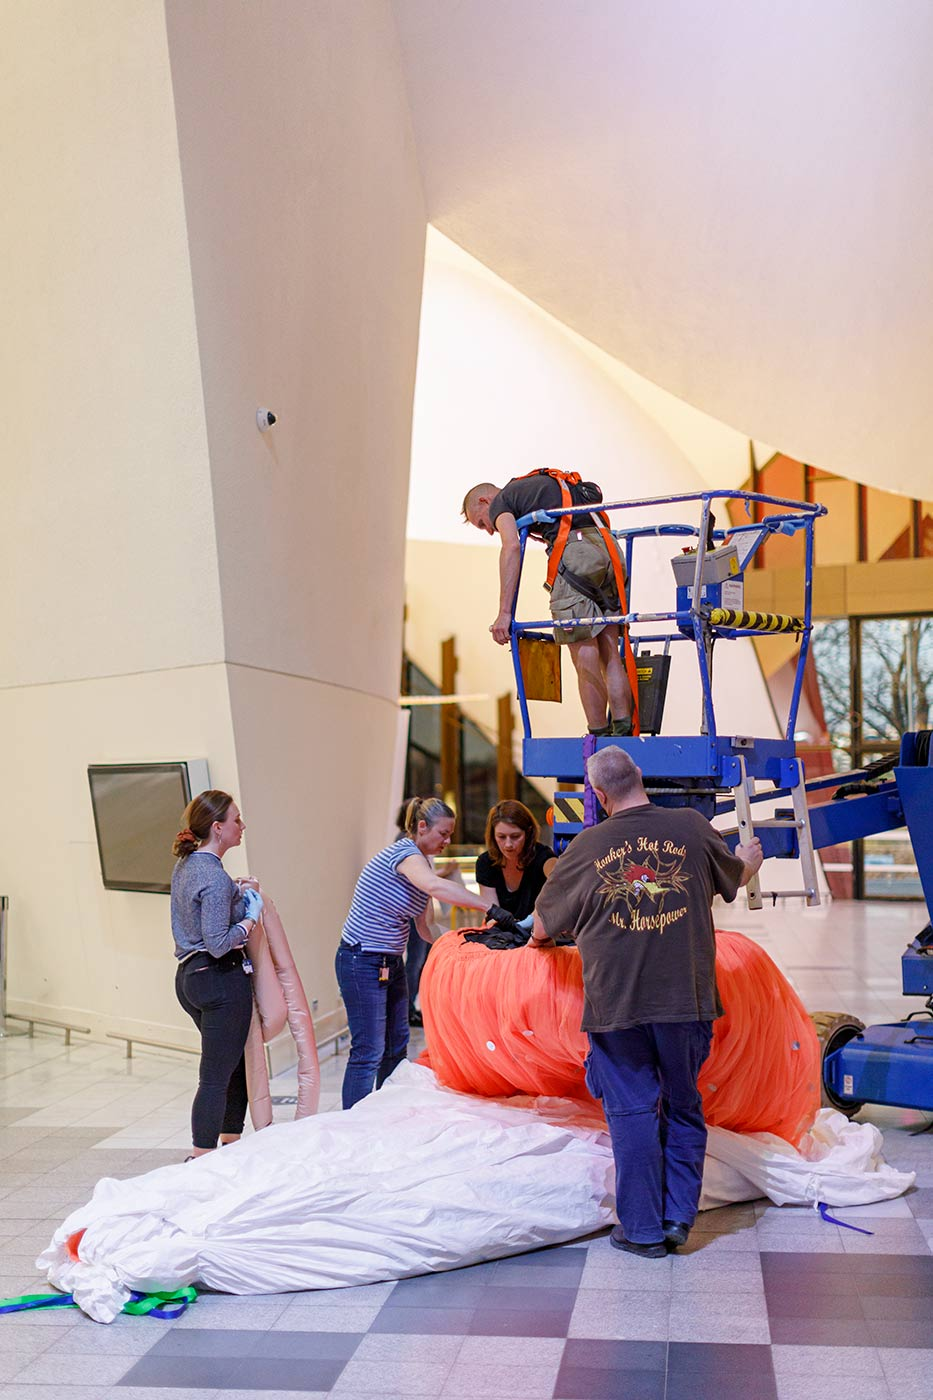 Colour photograph of staff installing a large object in a hall. - click to view larger image